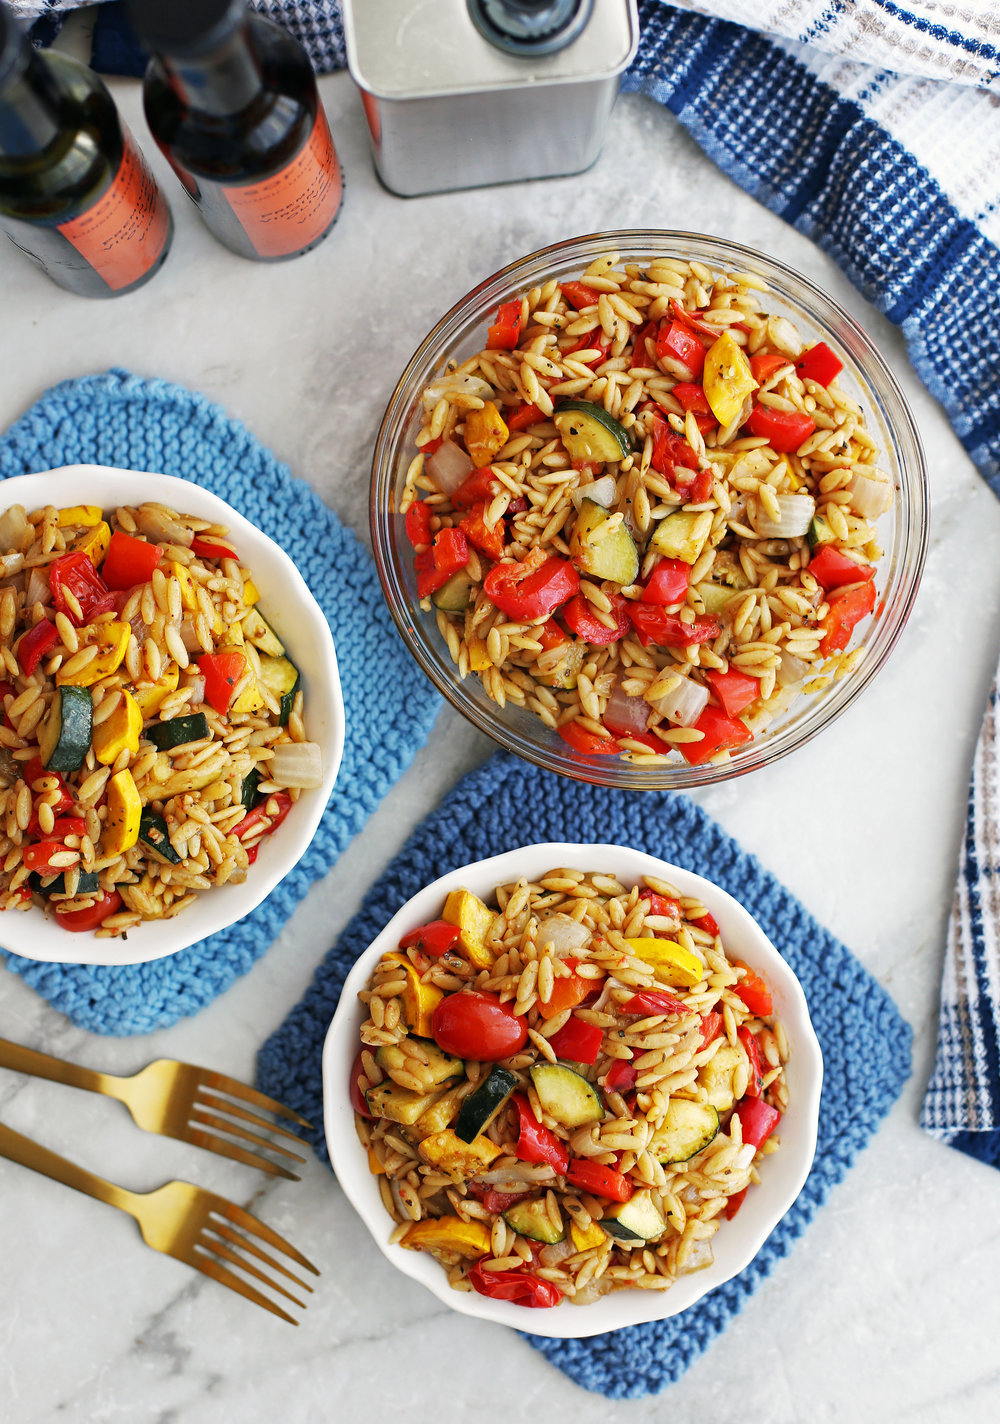 Three bowls containing colourful roasted summer vegetable and orzo pasta salad with Dijon-balsamic vinaigrette.